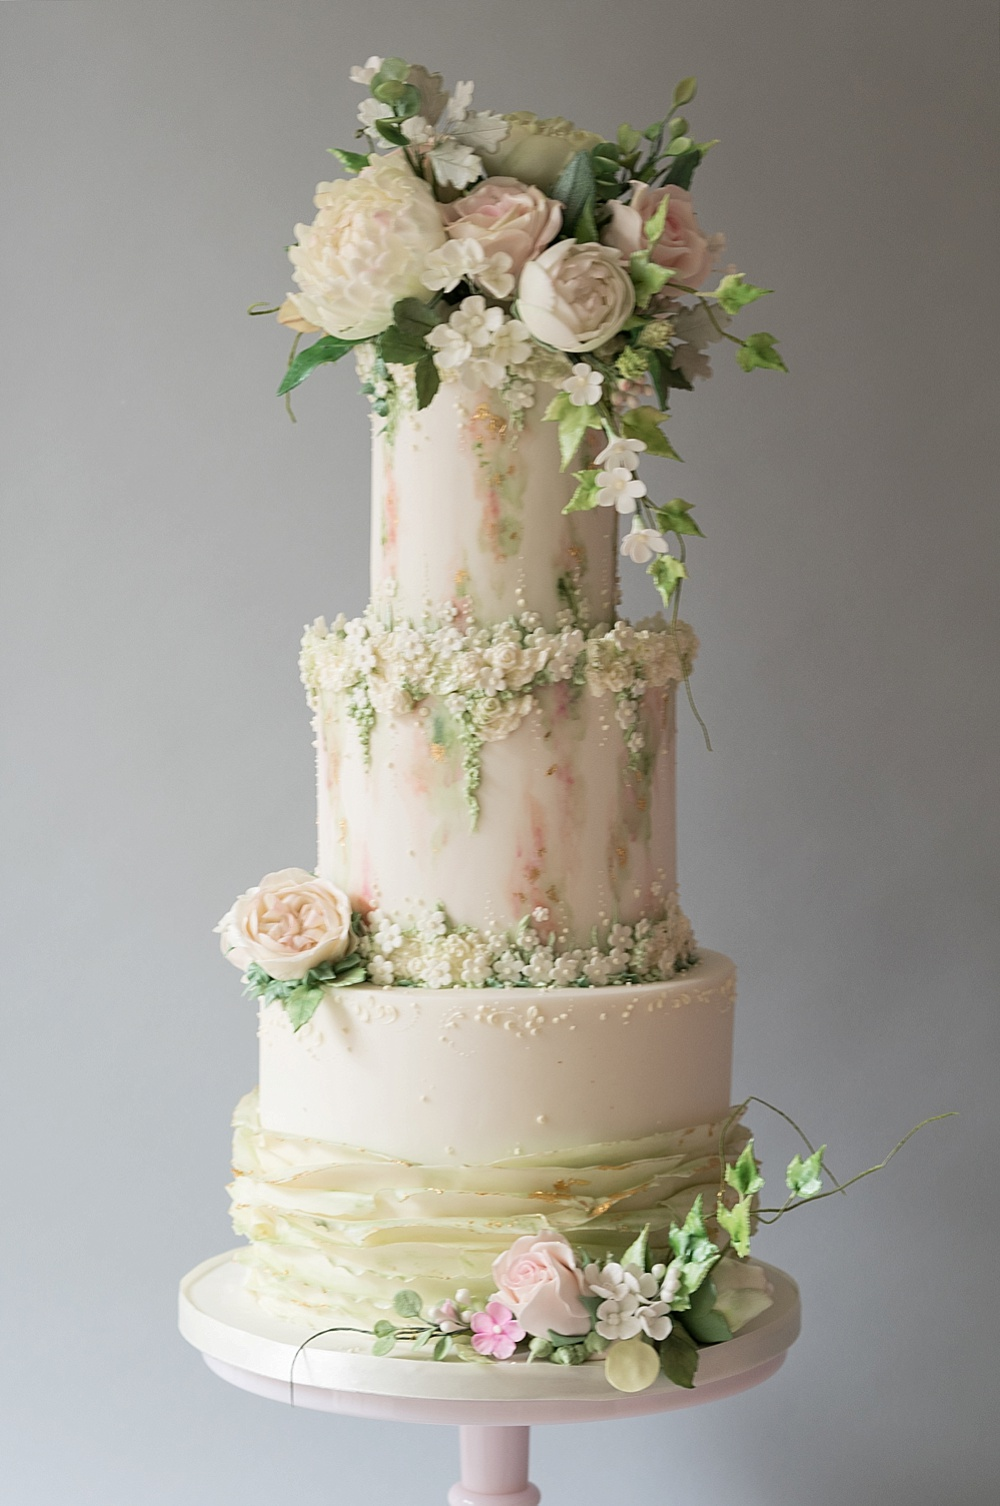 Iced wedding cakes from top uk wedding cake makers rmw the list summer breeze cake by the frostery junglespirit Image collections